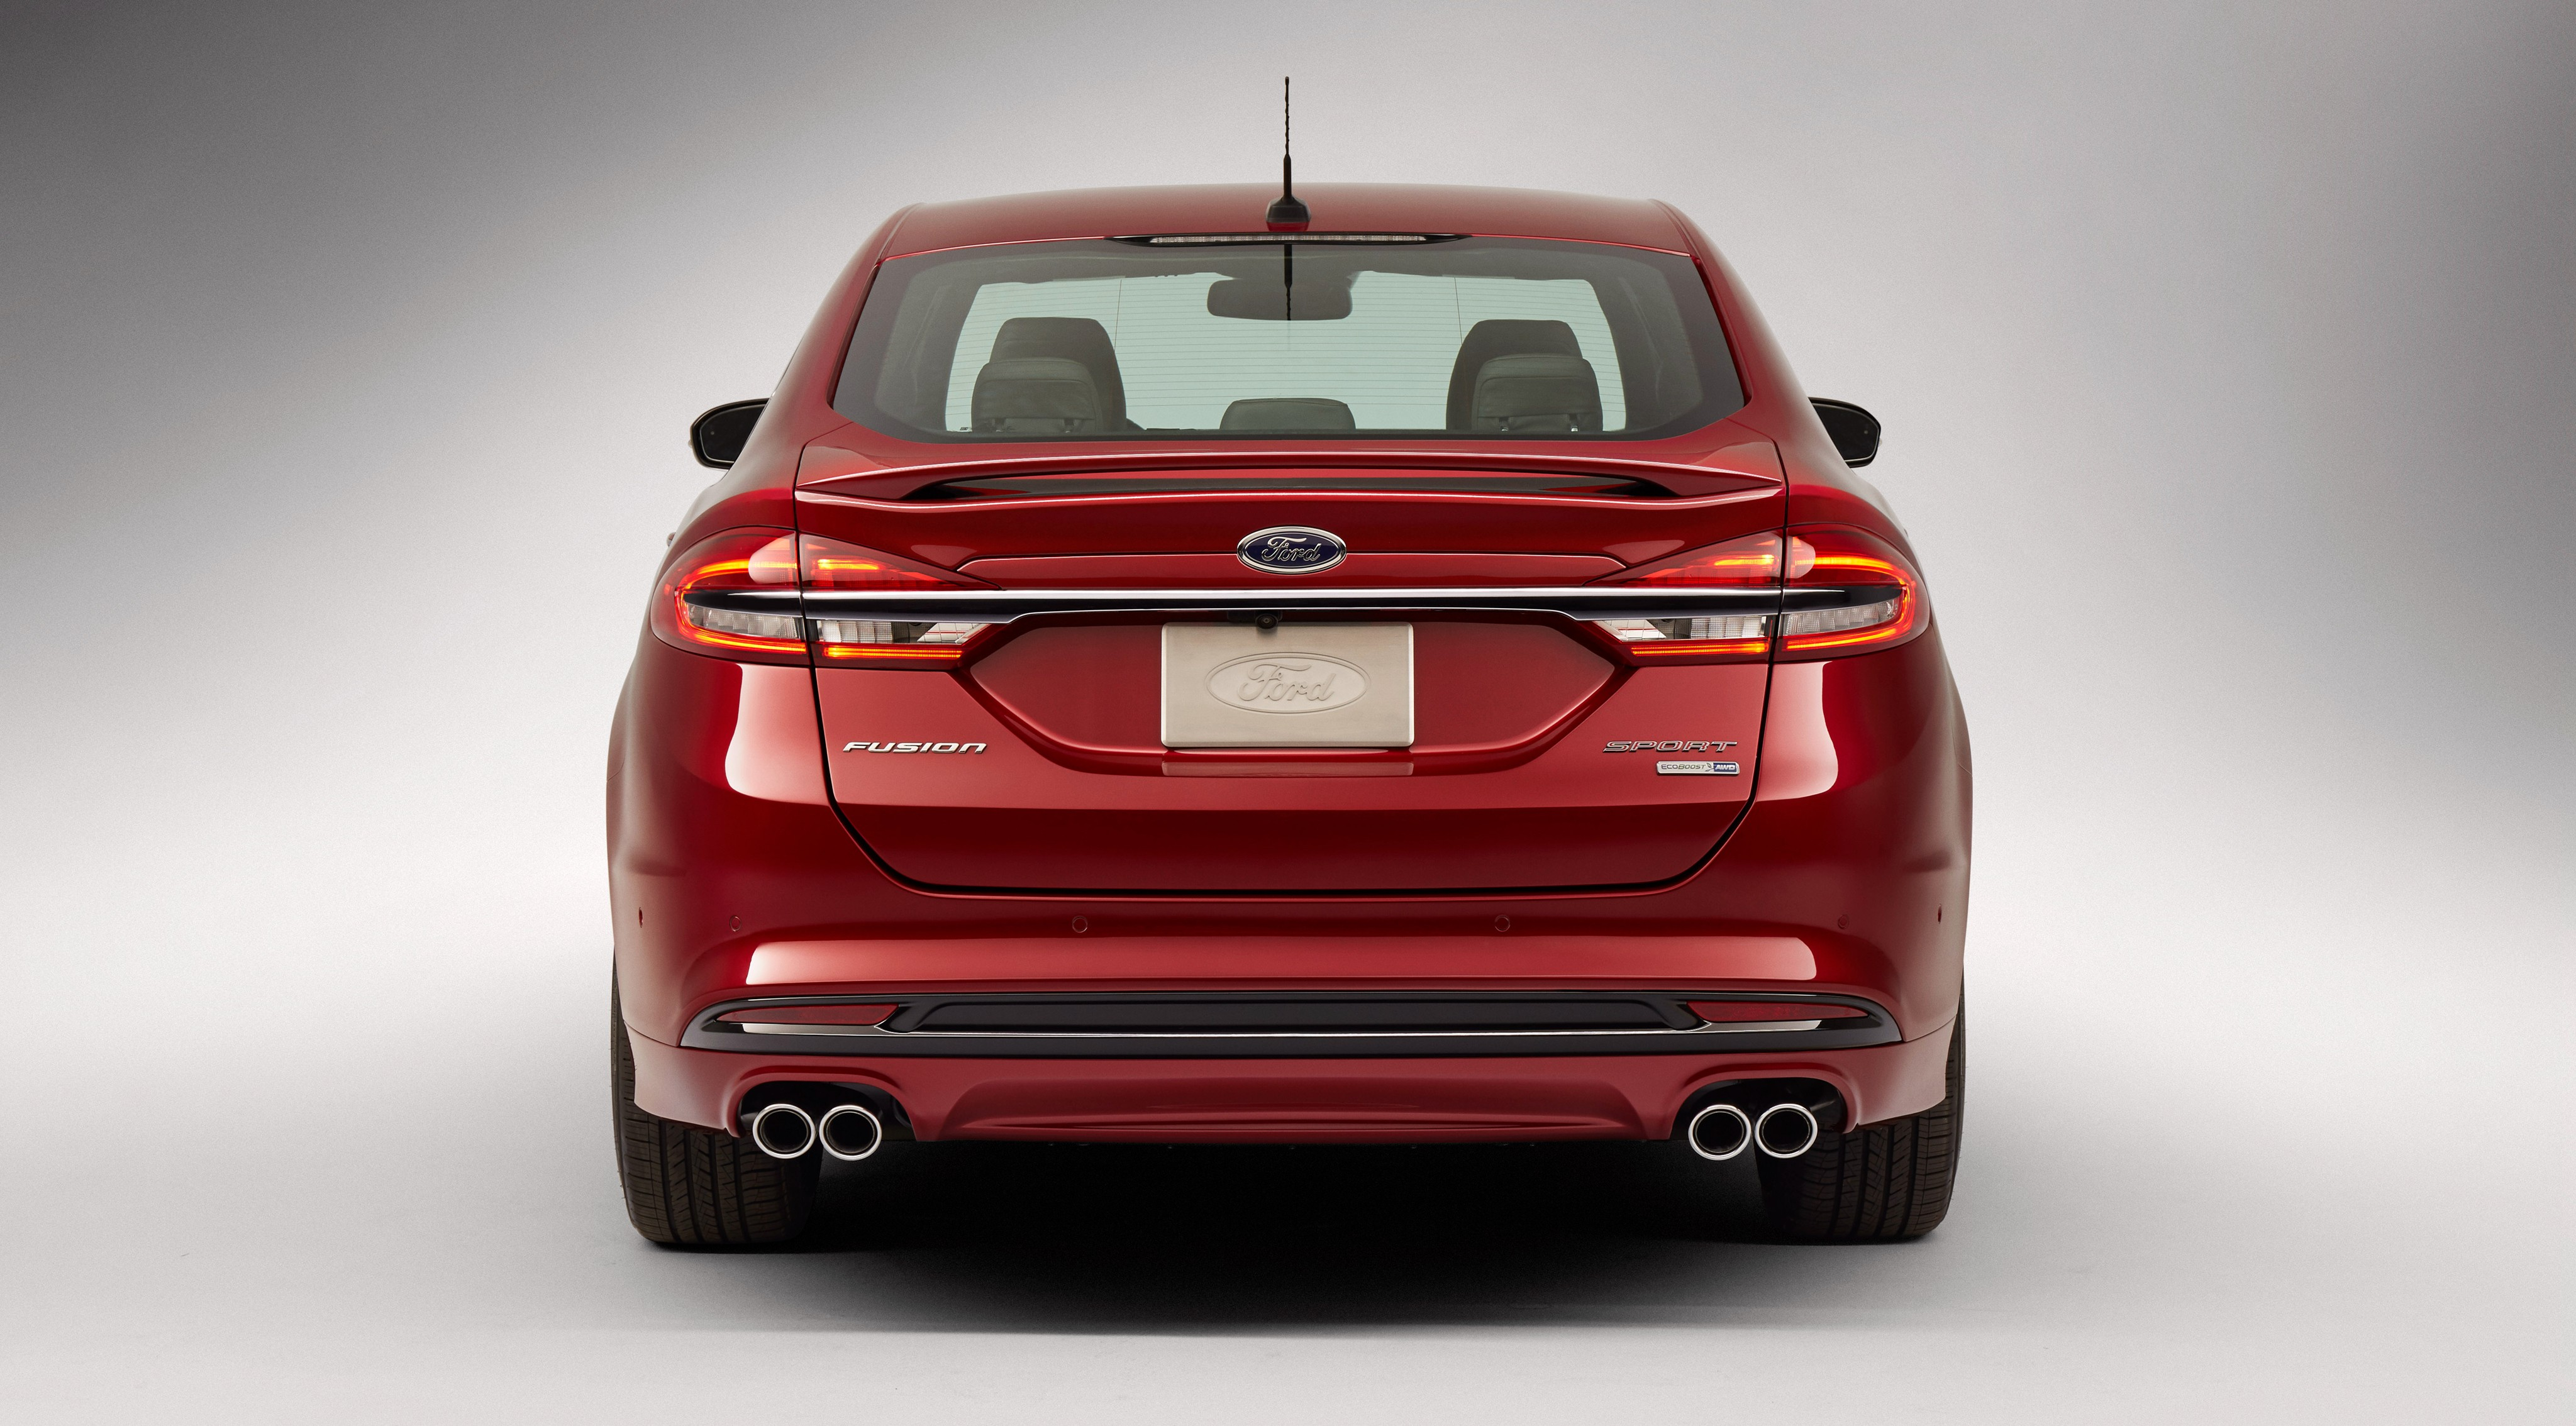 Ford Fusion 2017 Sport >> 2017 Ford Fusion Sport Arrives at Dealers in August, Priced at $34,350 - autoevolution